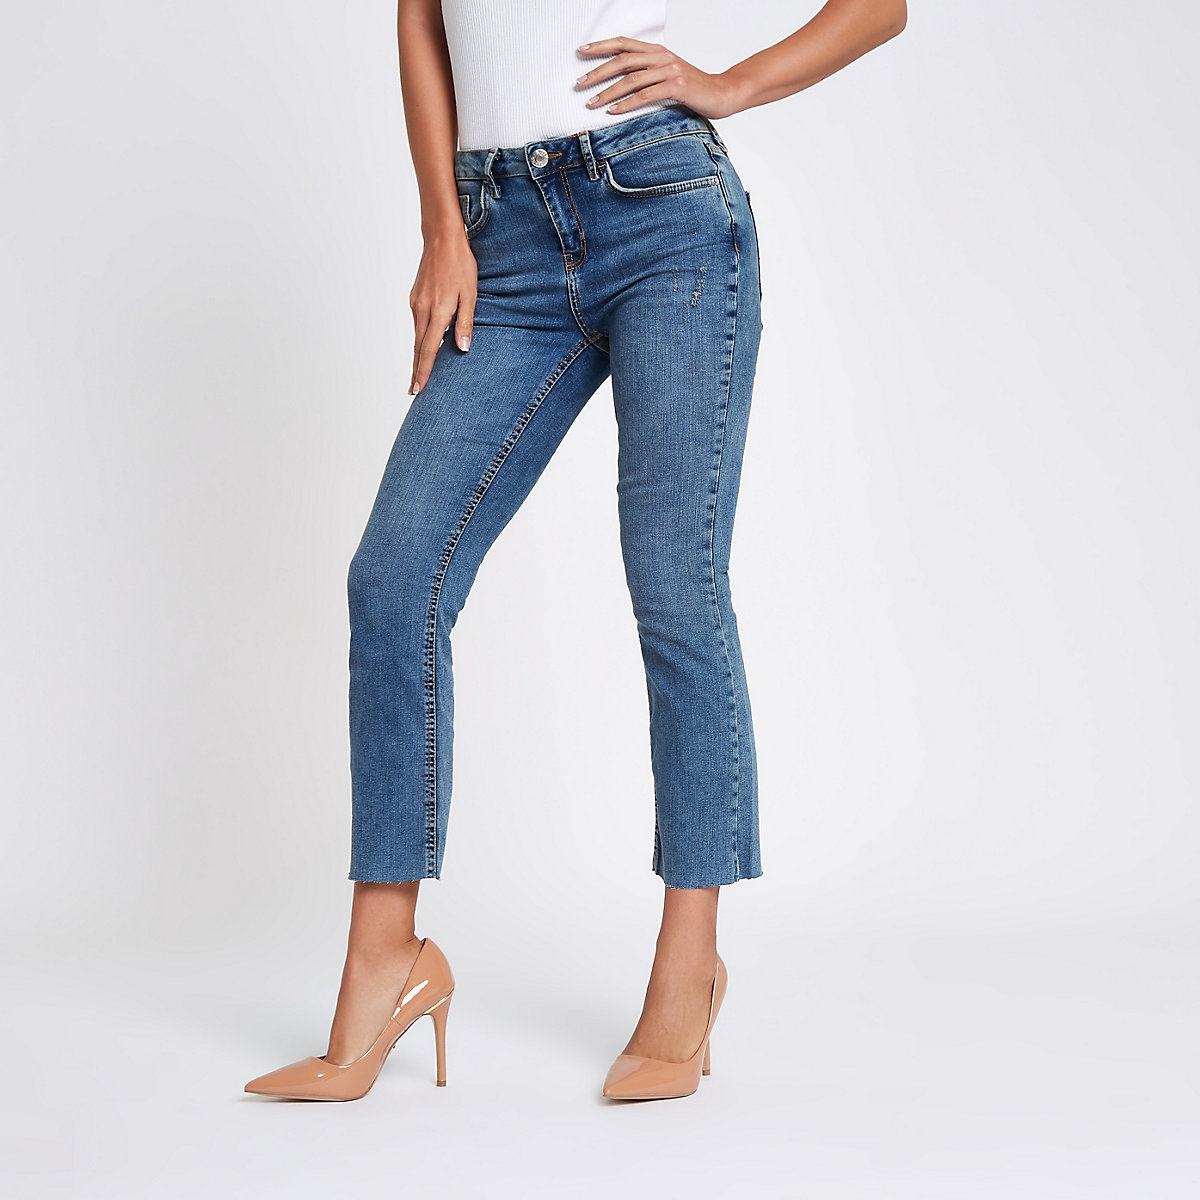 Blue denim cropped flared jeans